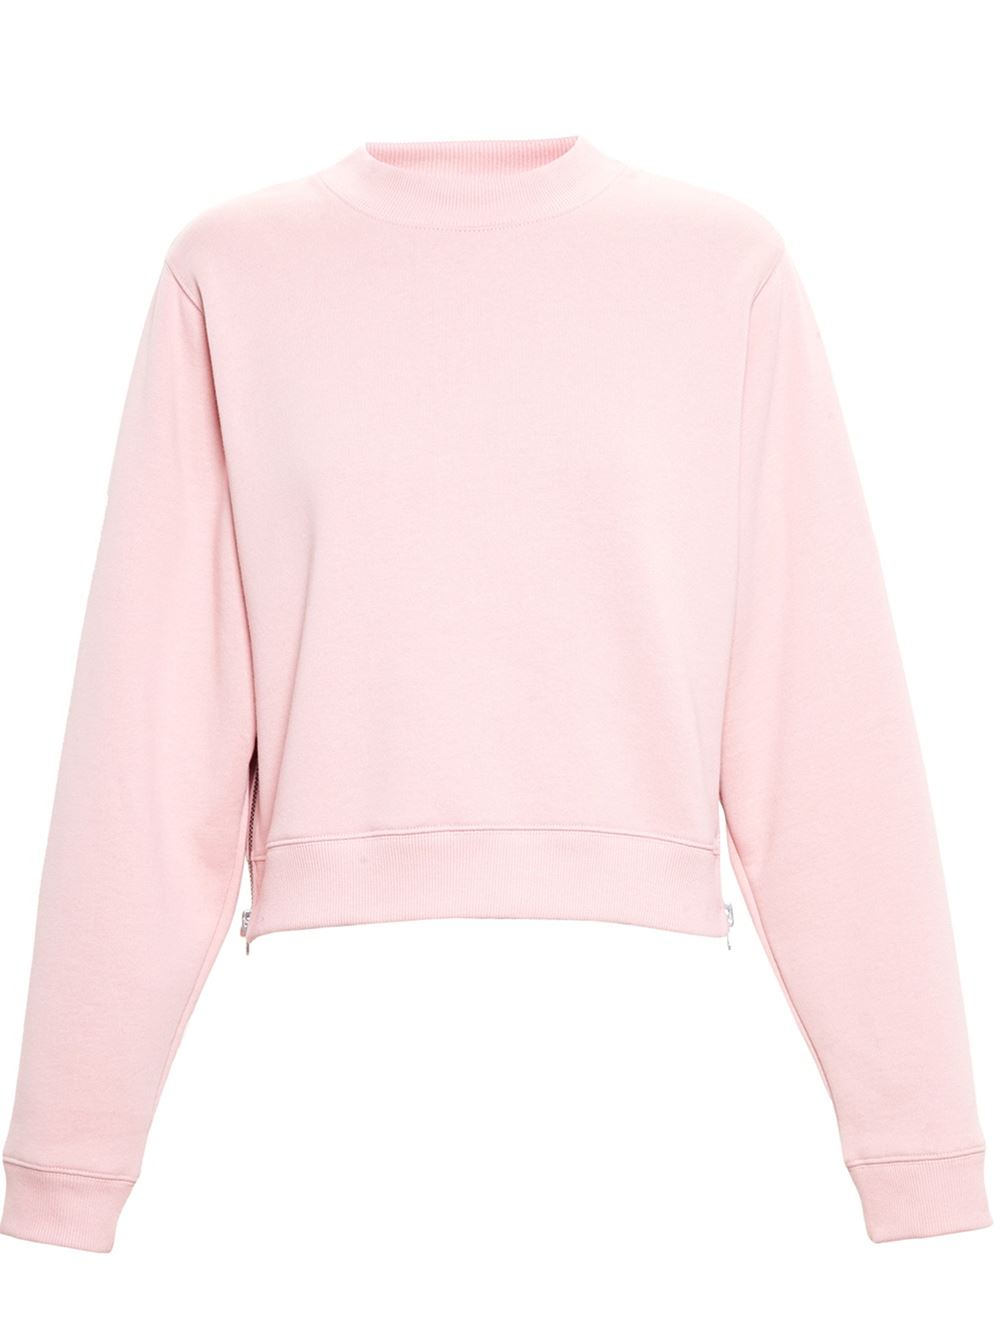 Acne studios Bird Cropped Sweatshirt in Pink | Lyst